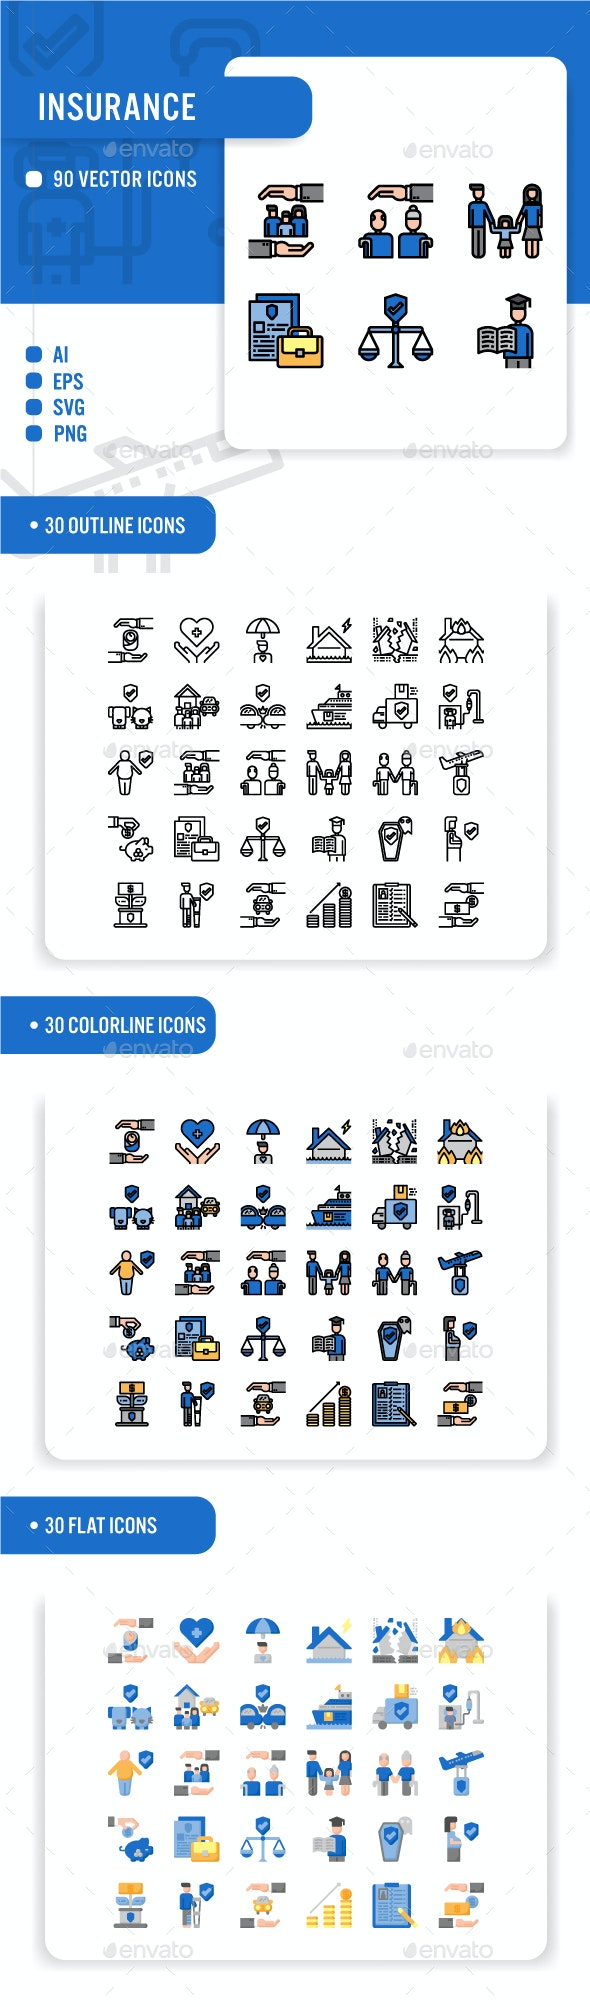 Insurance Icon Set - Business Icons